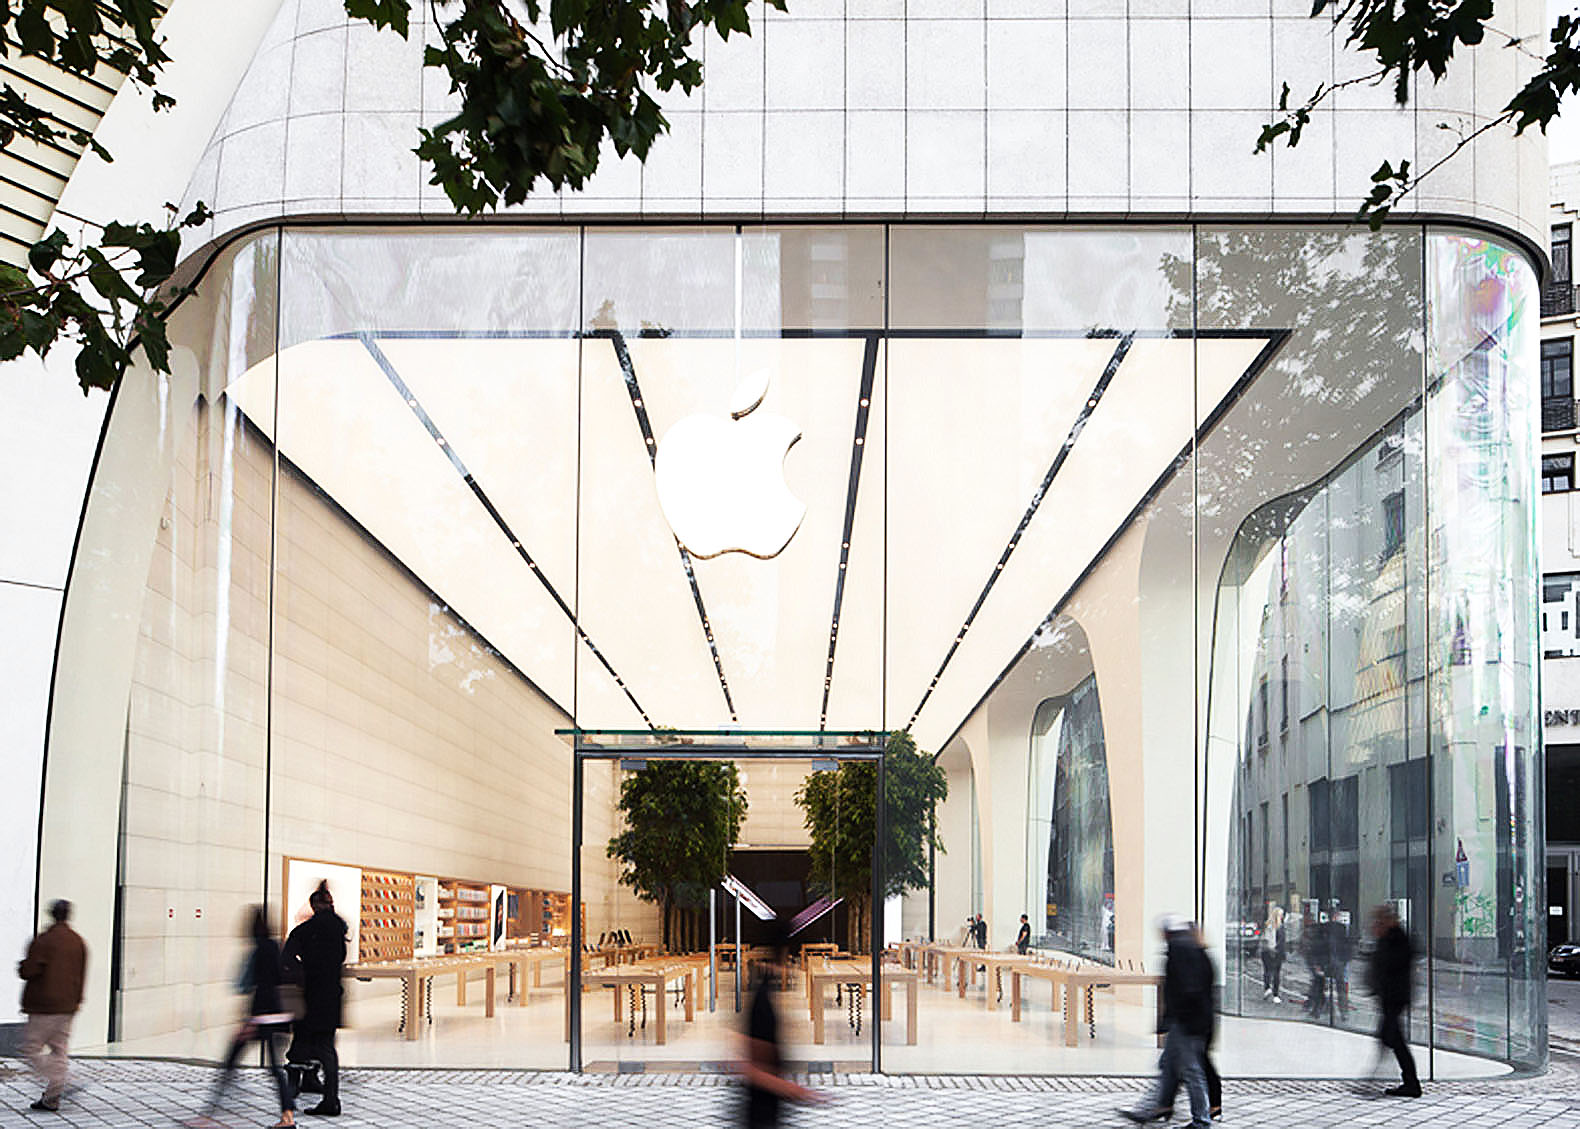 Apple unveils first store built under Jonathan Ive's creative guidance